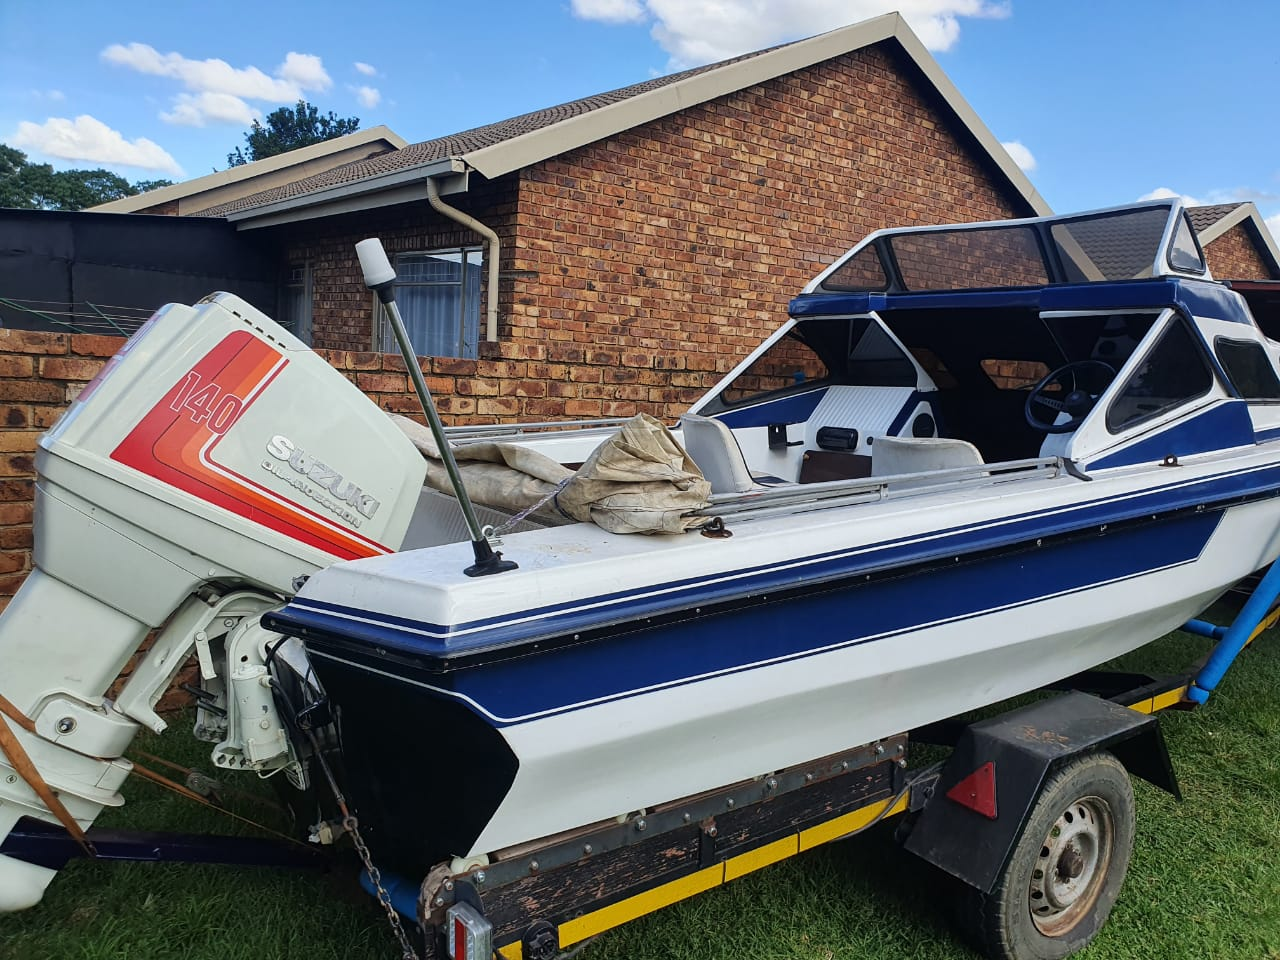 Nicely looked after boat